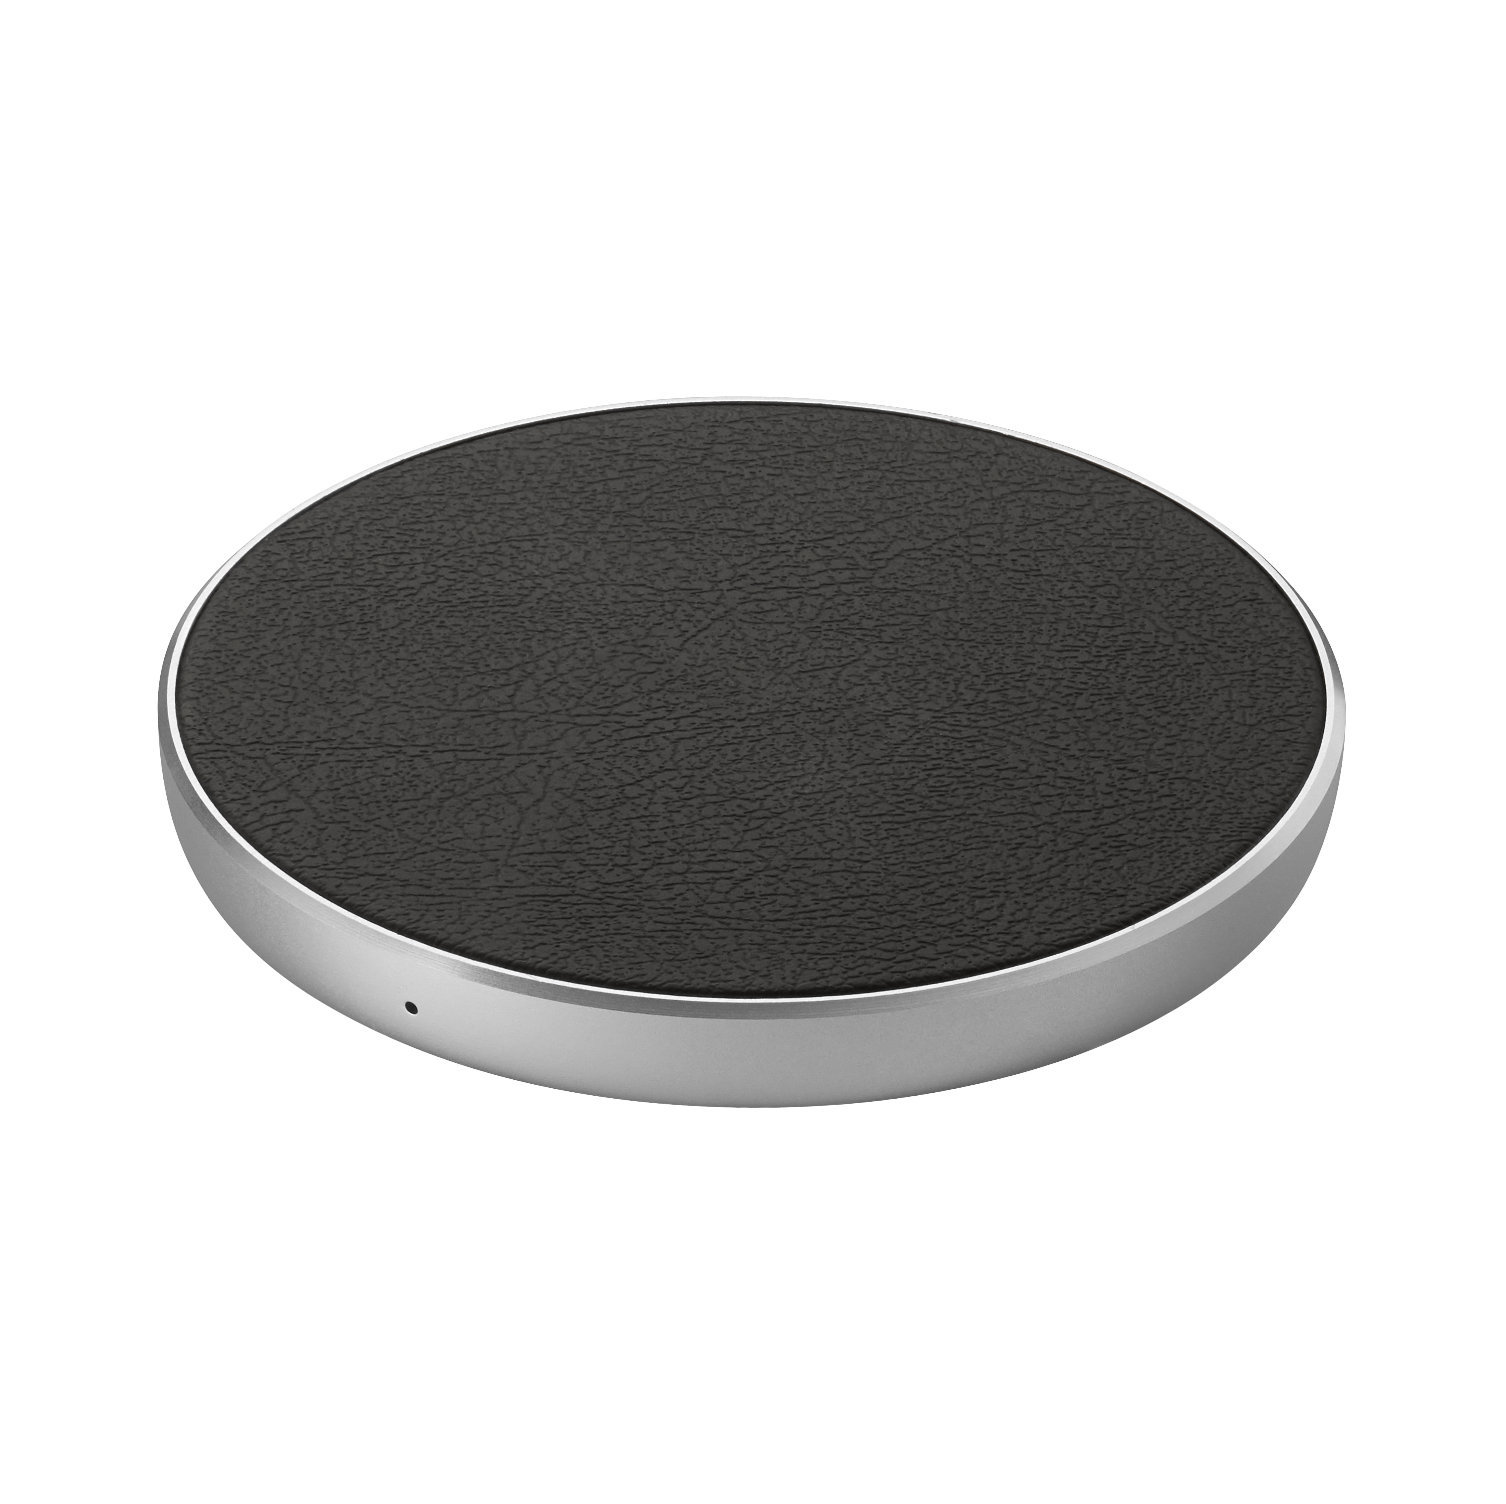 TAW-7.5AW Ultra slim fast wireless charger